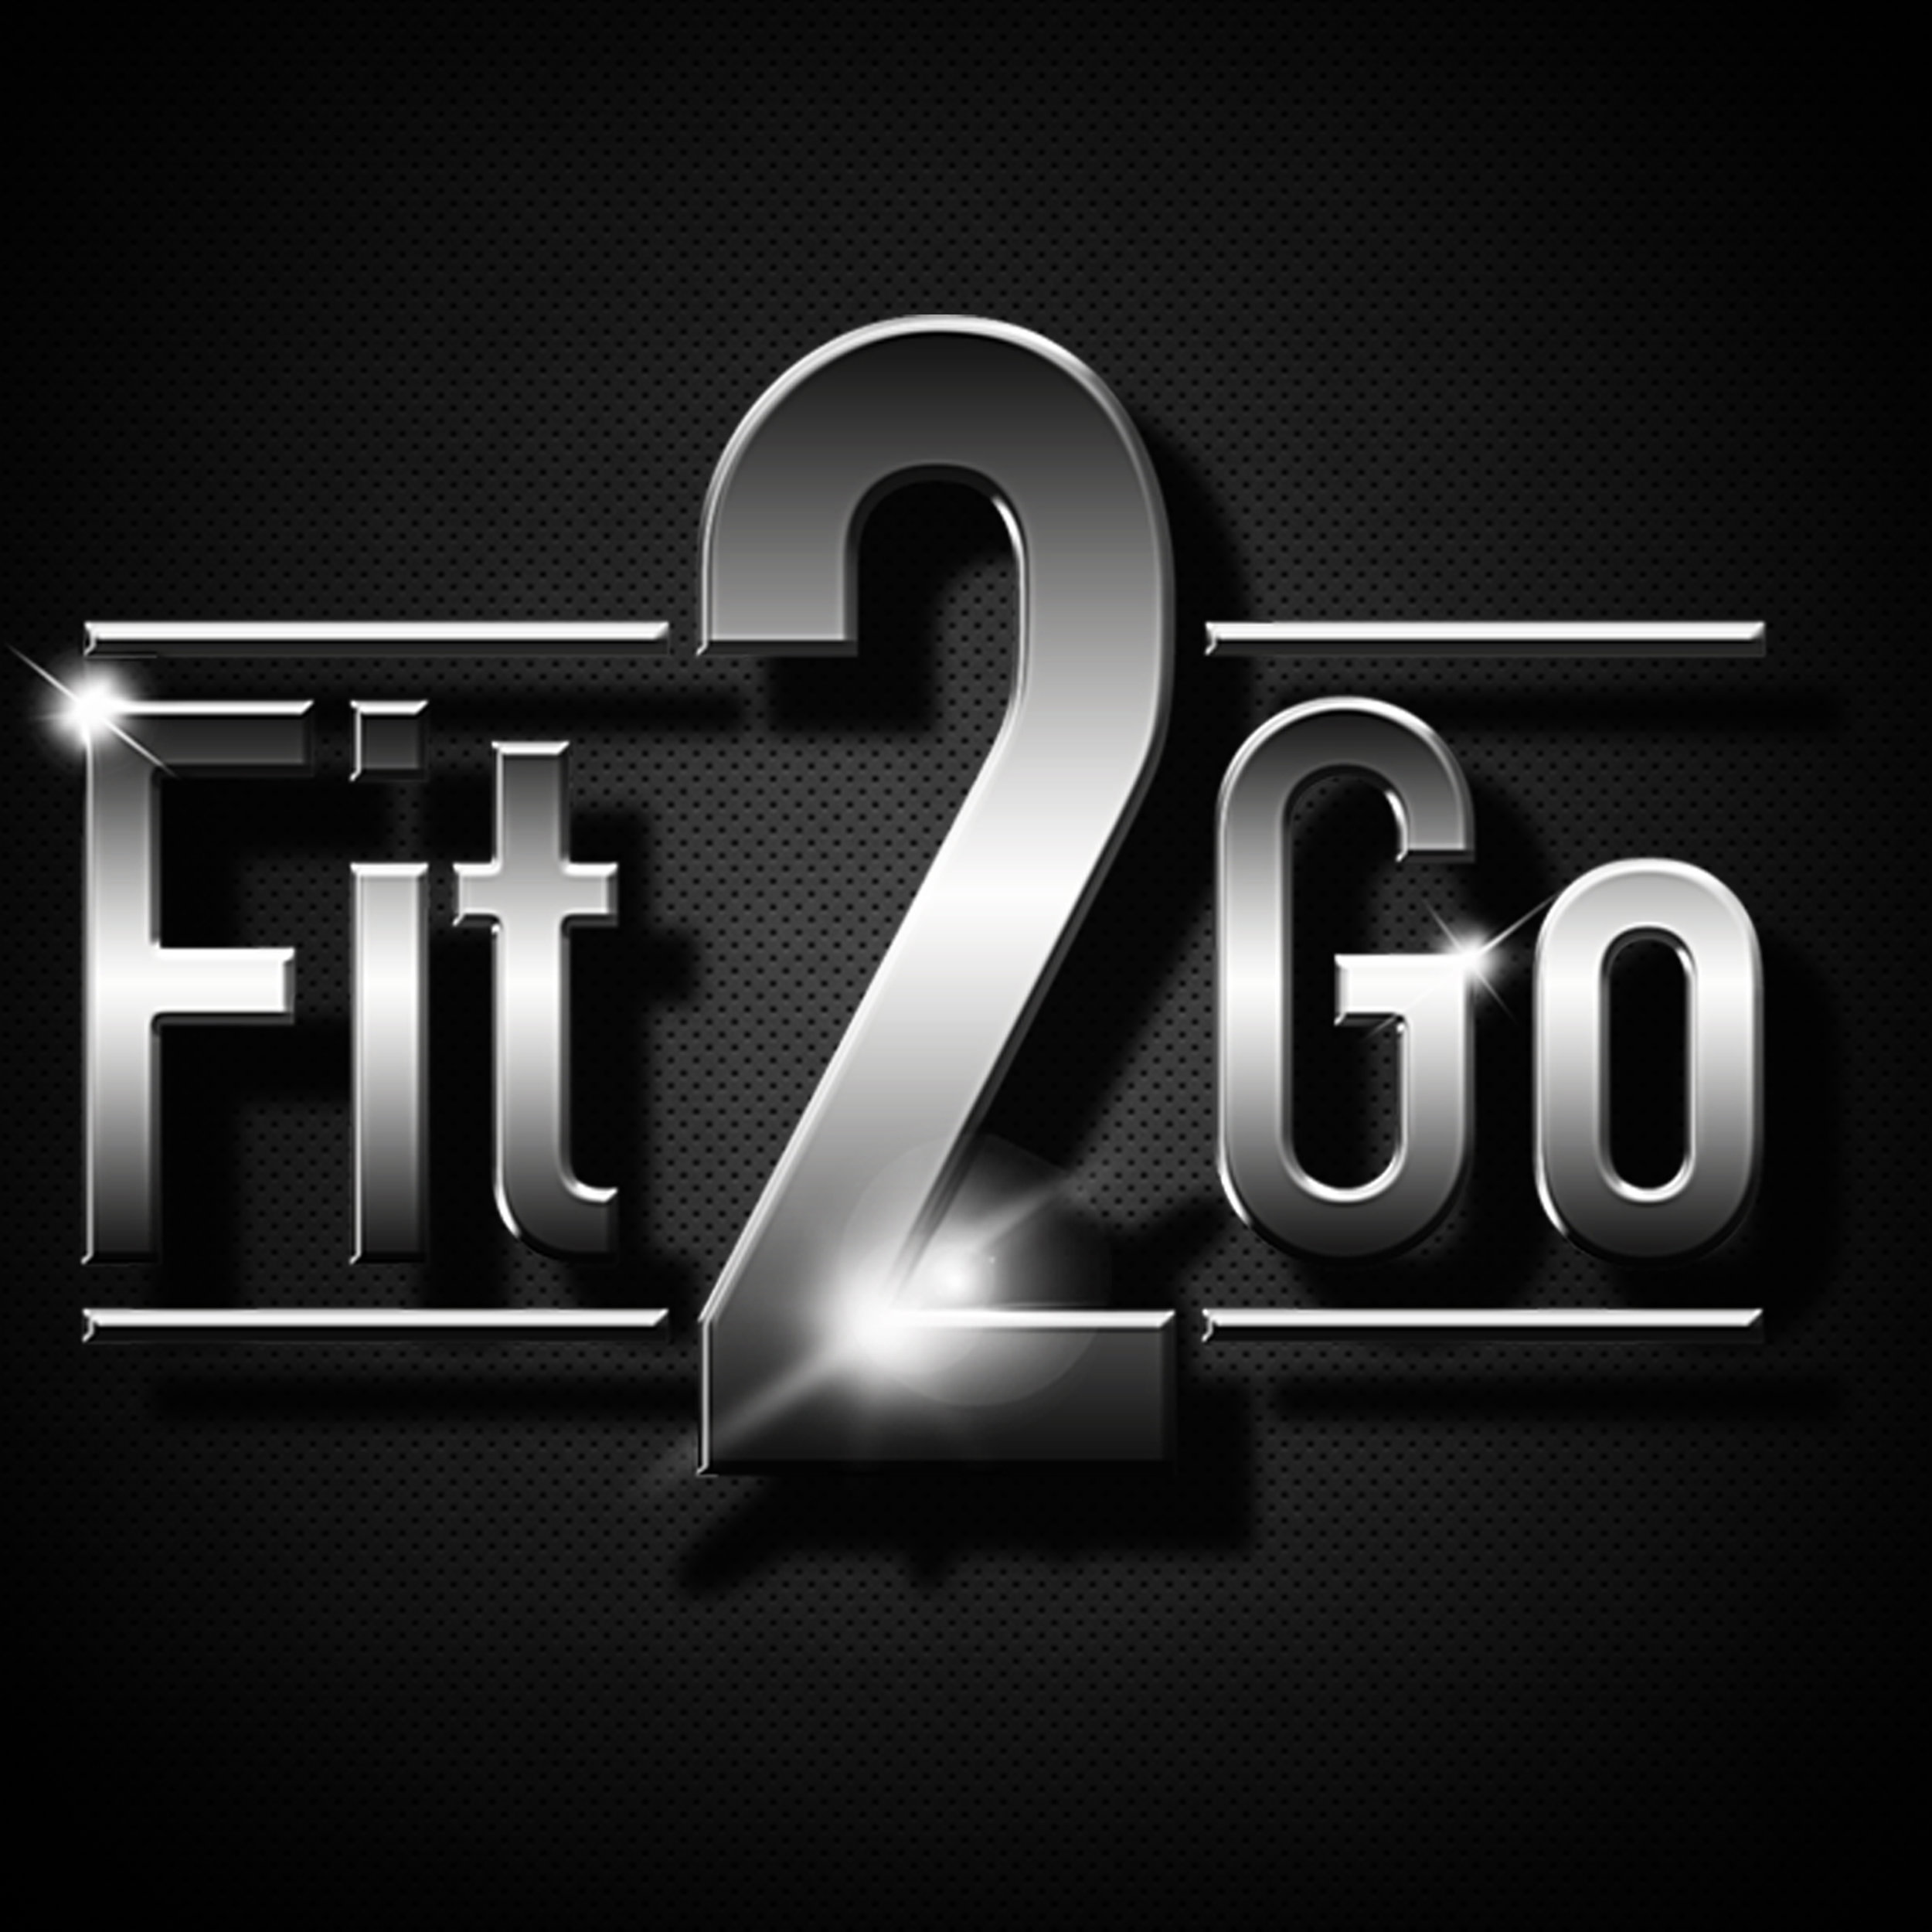 HCC Fit2Go - HCC Fit2Go is an online health and fitness program that was designed to enable us to reach the world and share the amazing results our clients have been able to achieve from our programs since it began in 2013.With Fit2Go there are no boundaries when it comes to logistics meaning we can offer our services to anyone anywhere in the world.Whether you are wanting a training plan or nutrition plan Fit2Go has you covered. We will put together a calculated plan to help you reach your goals, by completing a short questionnaire this will give us the information we need to put together your plan. No this is not a standard everyone gets the same plan, we believe each individual and their goals are completely different and therefore we have created a formula that takes into account your total daily energy expenditure, this will ensure you are getting exactly what your body needs for you to be able to achieve you goals.We have 4 different menu options available including: General, Vegetarian, Ketogenic and Vegan